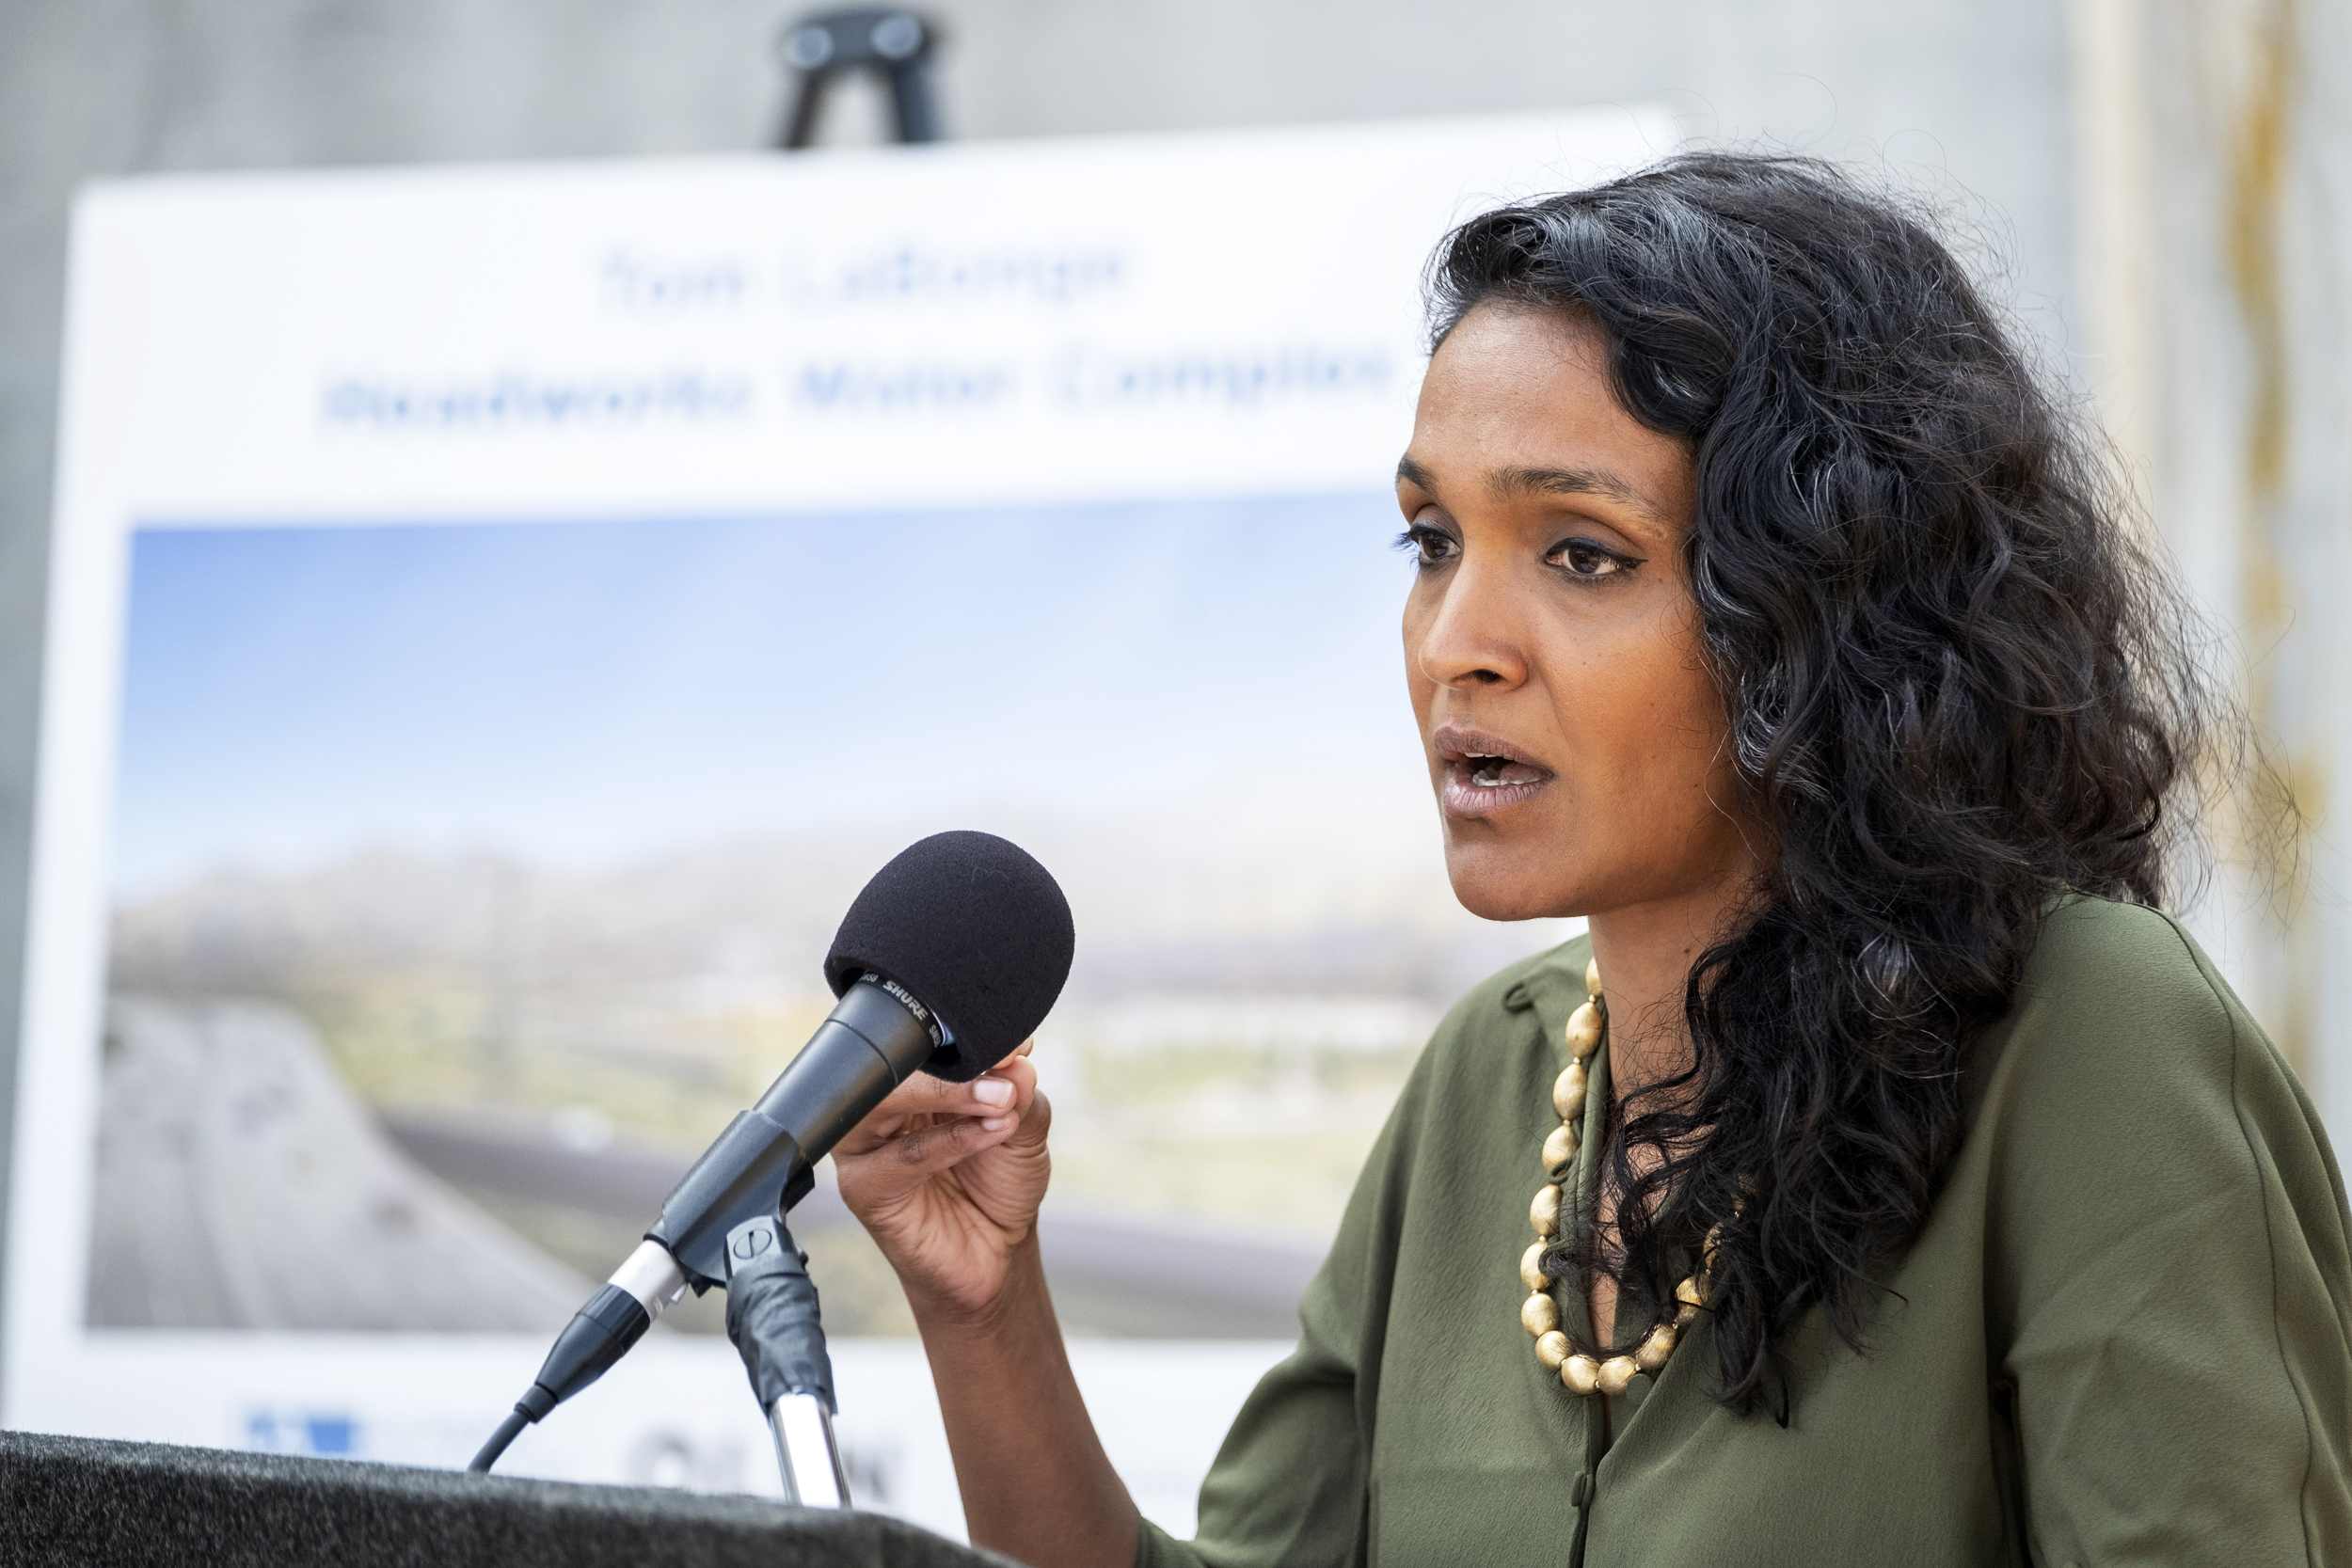 She helped impoverished communities in India. Now Nithya Raman wants to help L.A.